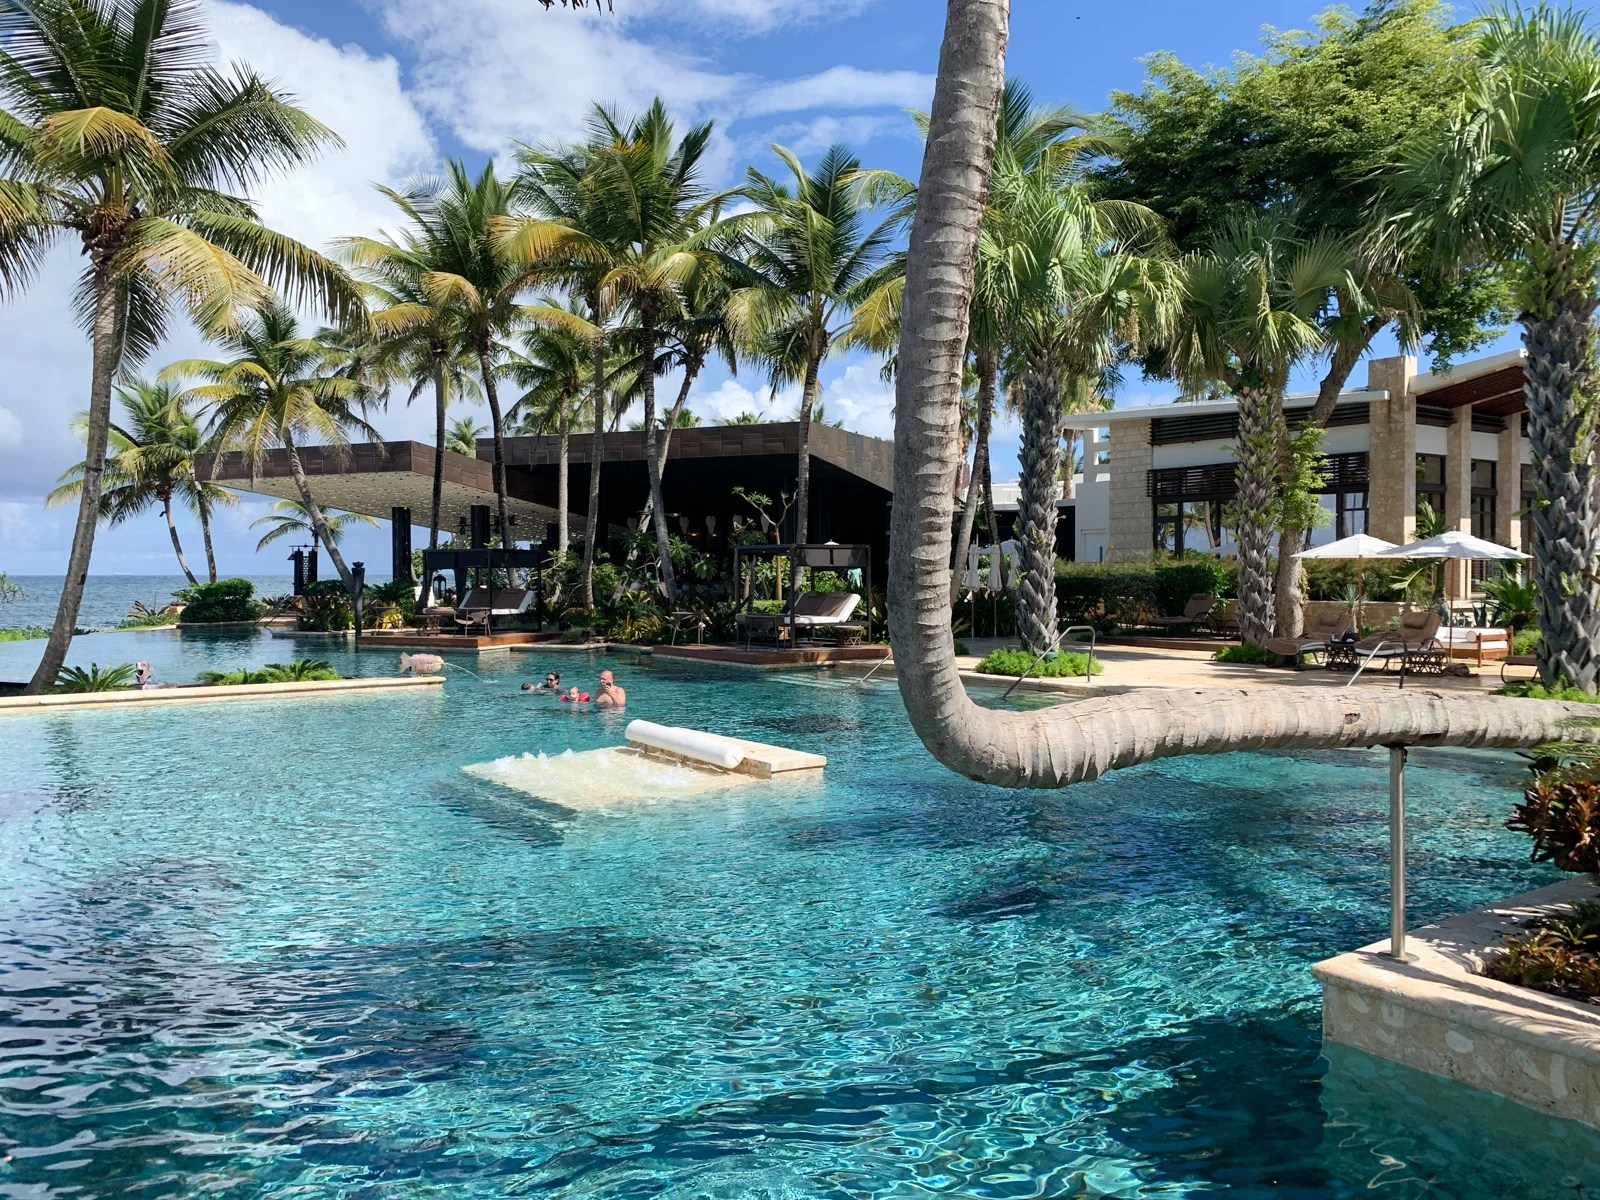 A Review of Dorado Beach A RitzCarlton Reserve